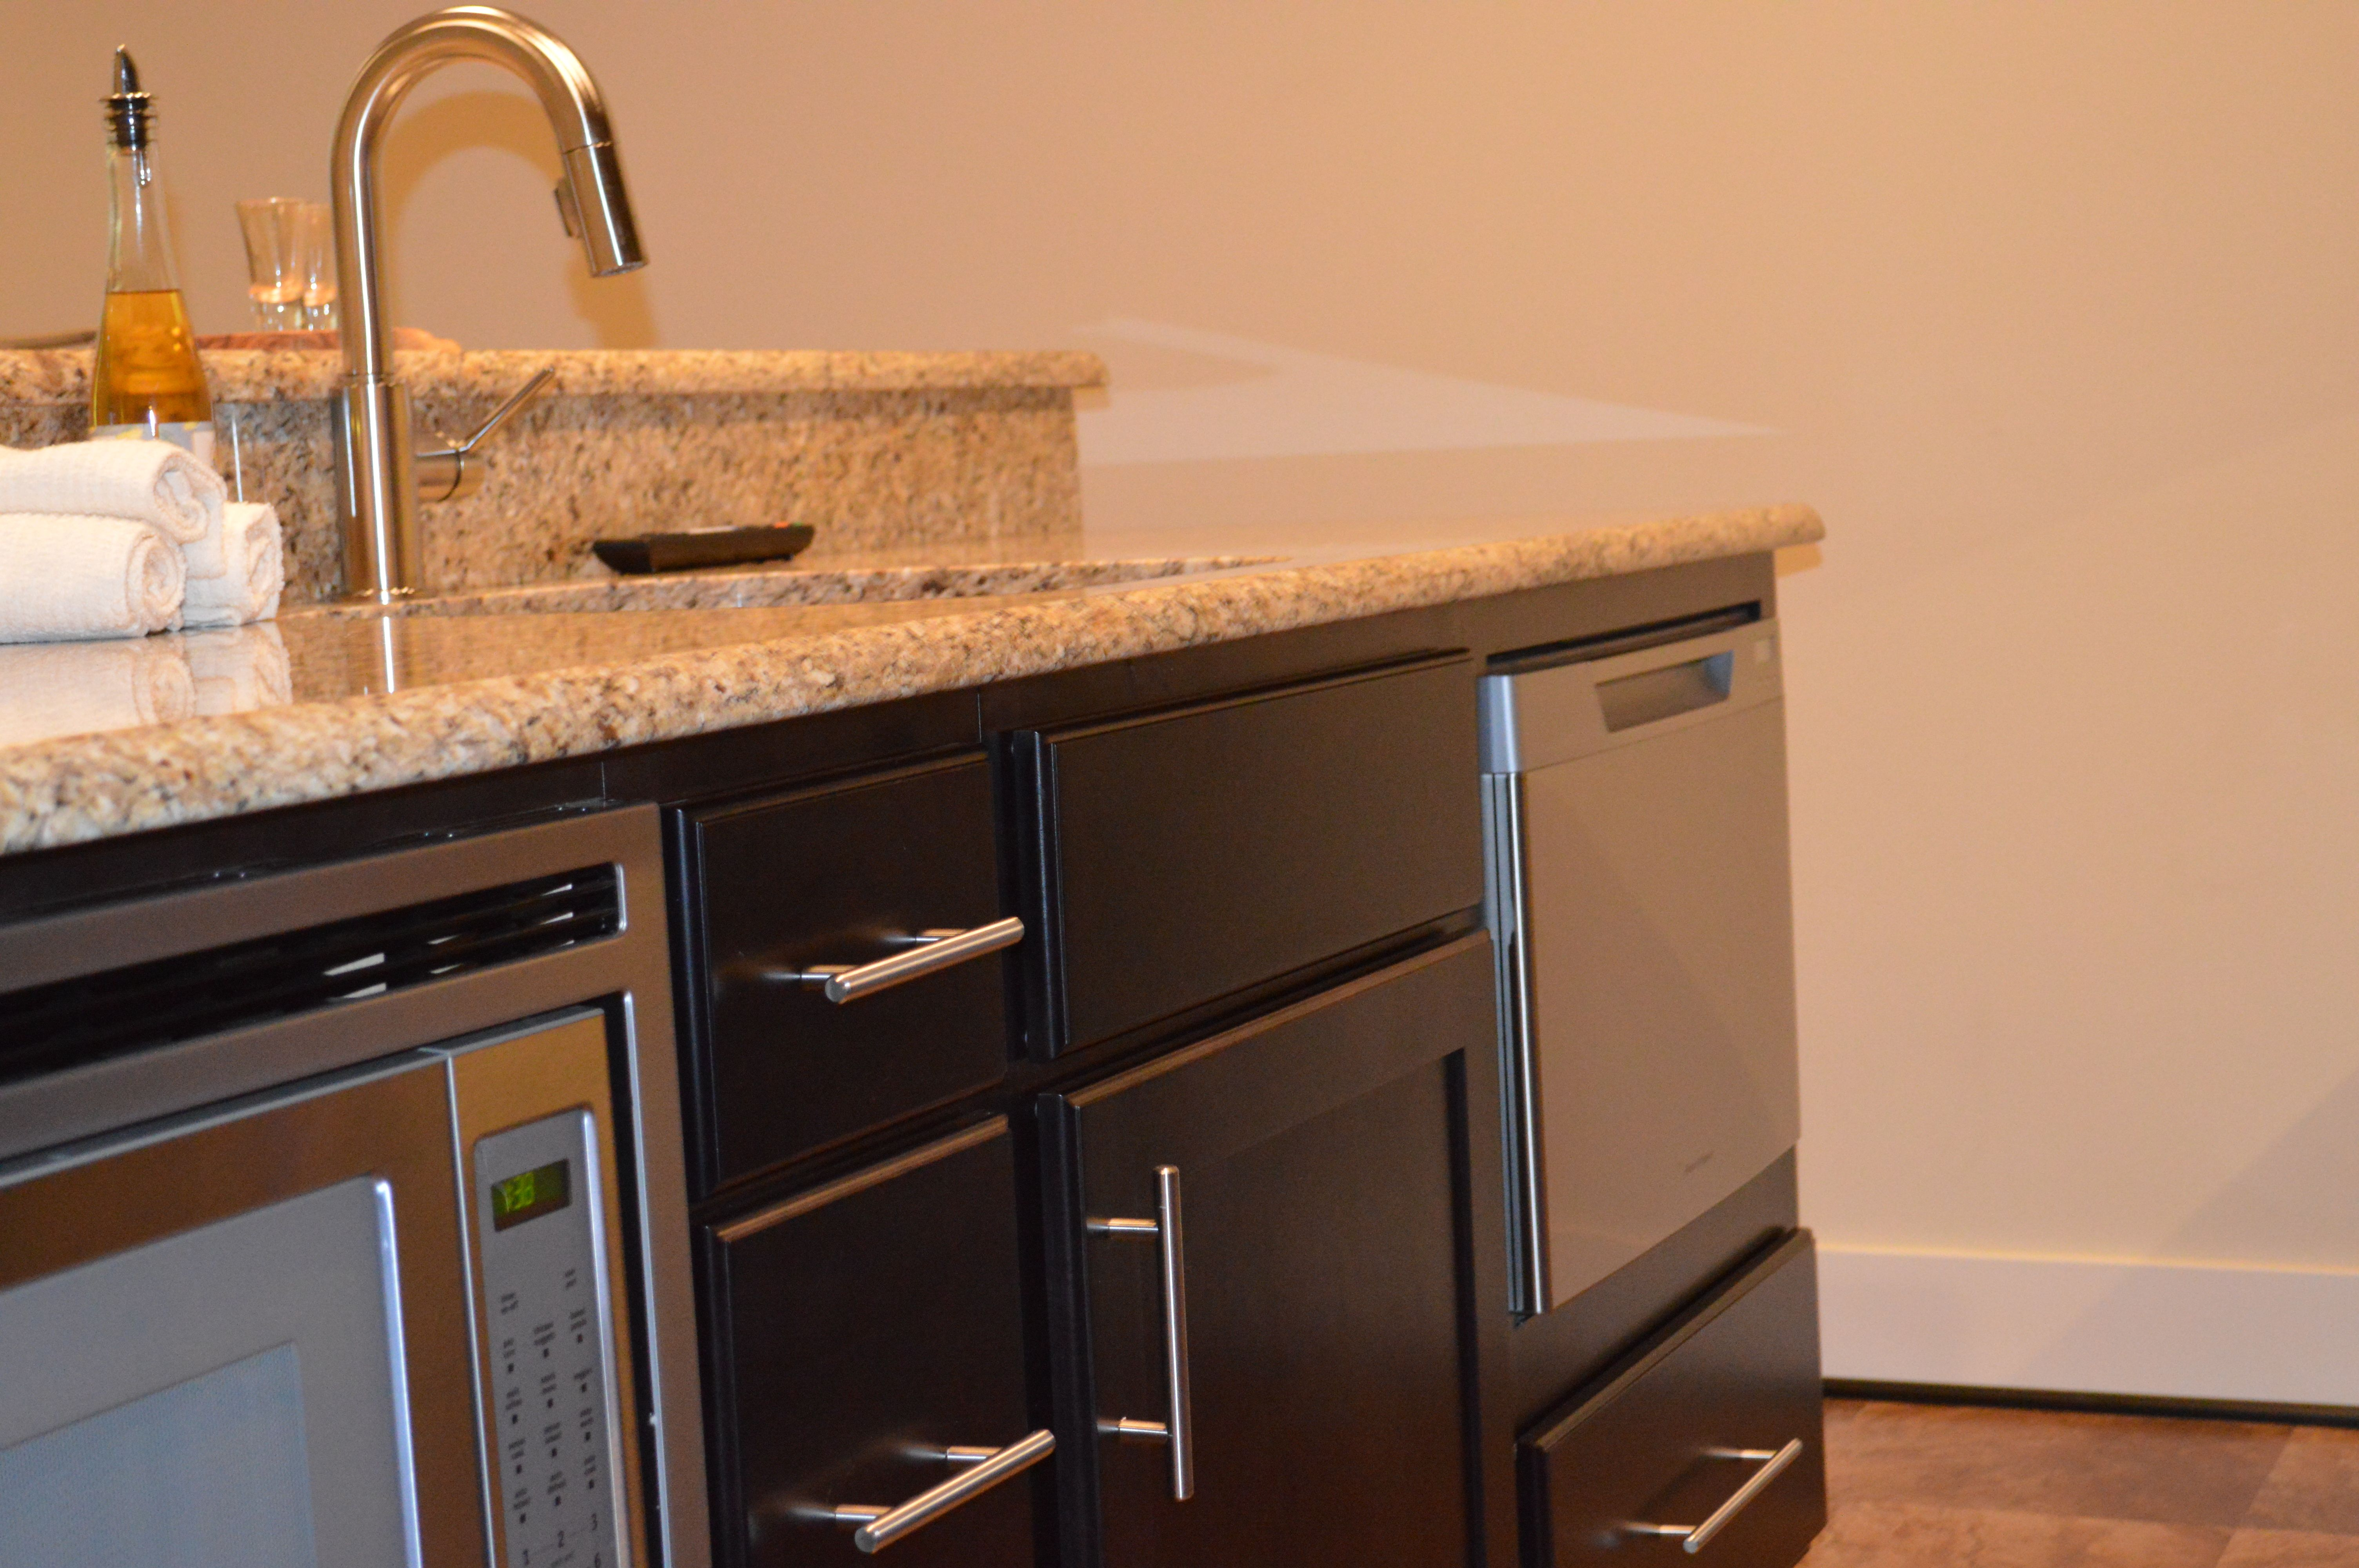 dimensions wall x dishwasher with single advantium ge in inside series furniture drawer cafe oven technology microwave